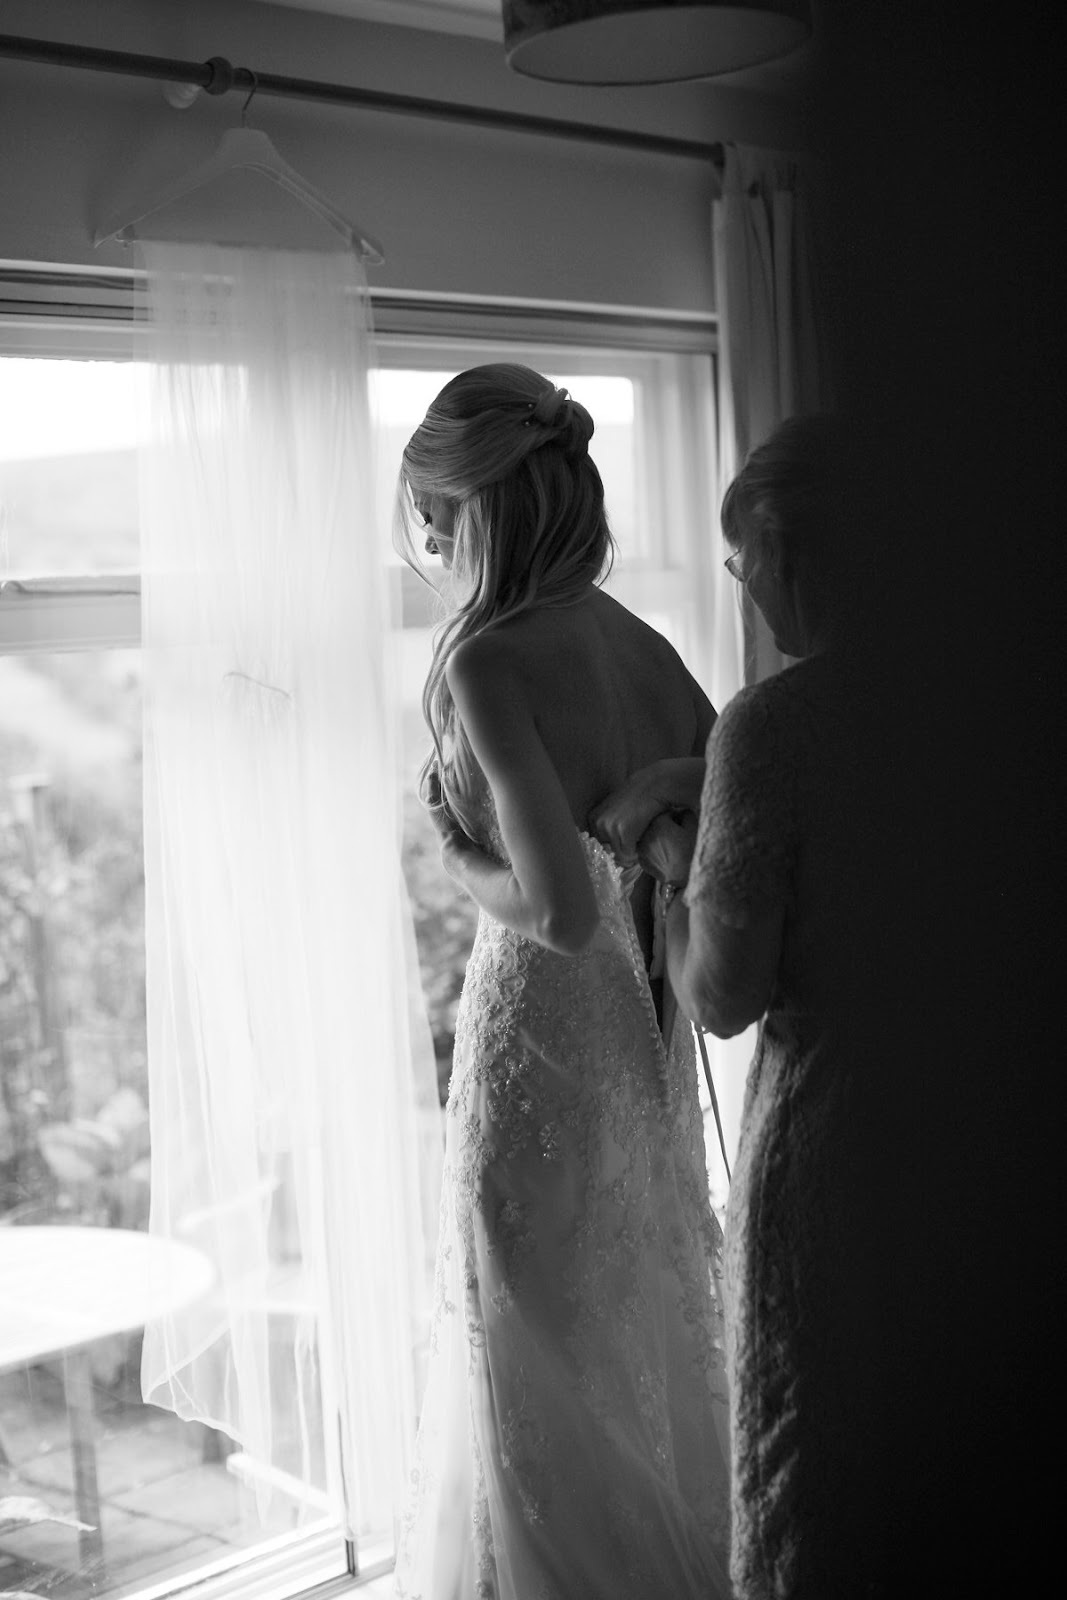 Our Wedding: Getting Ready On The Big Day